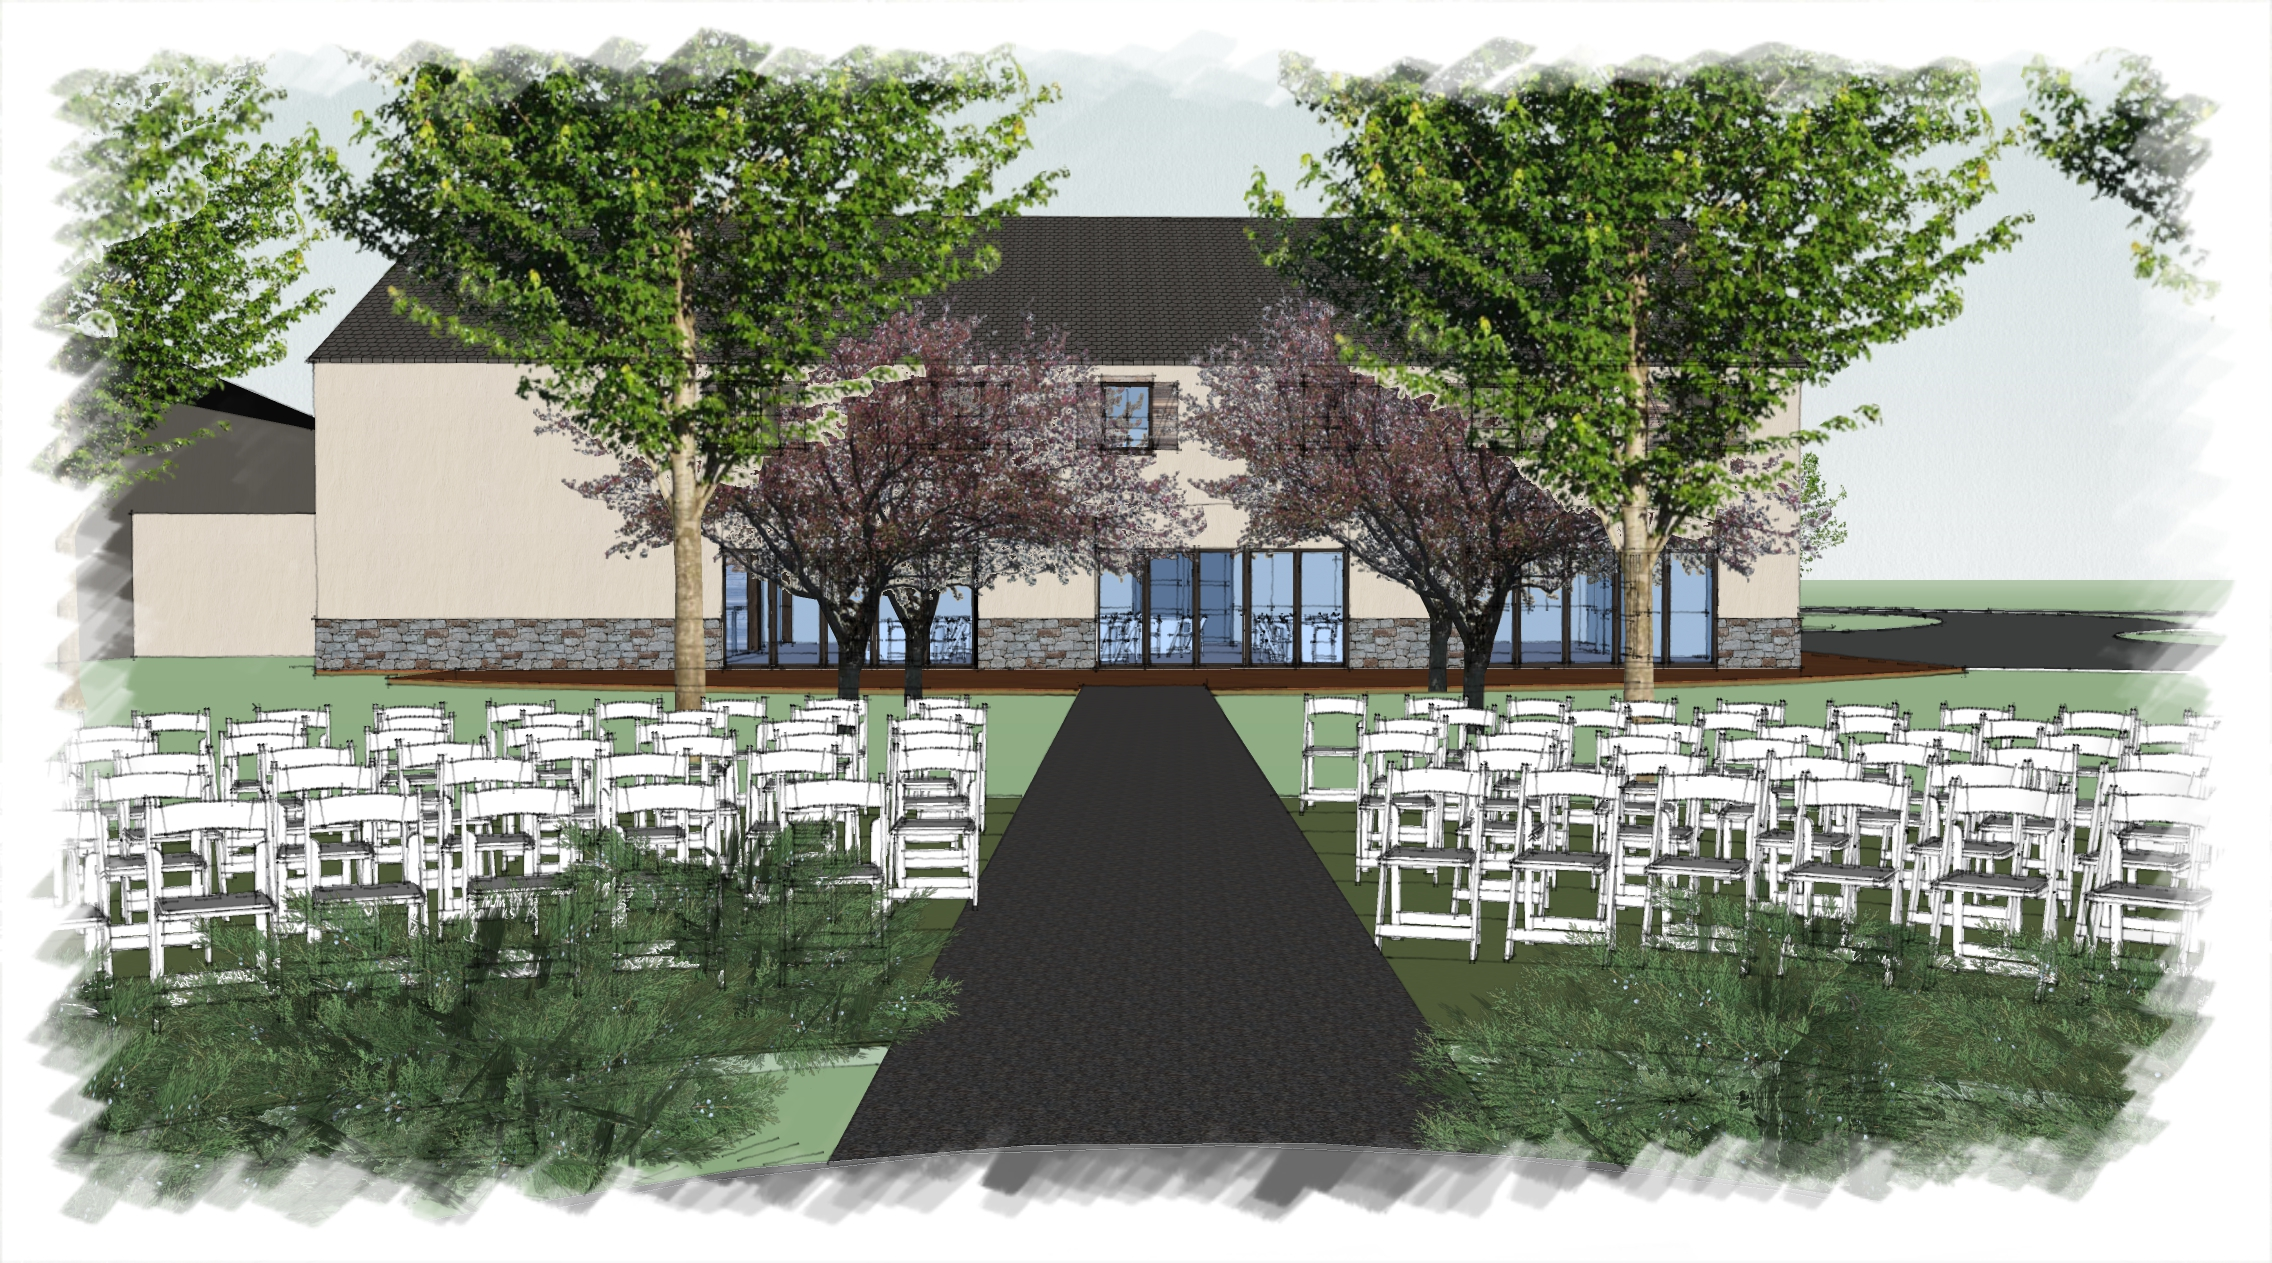 180906_CEREMONY VIEW SKETCHUP.jpg